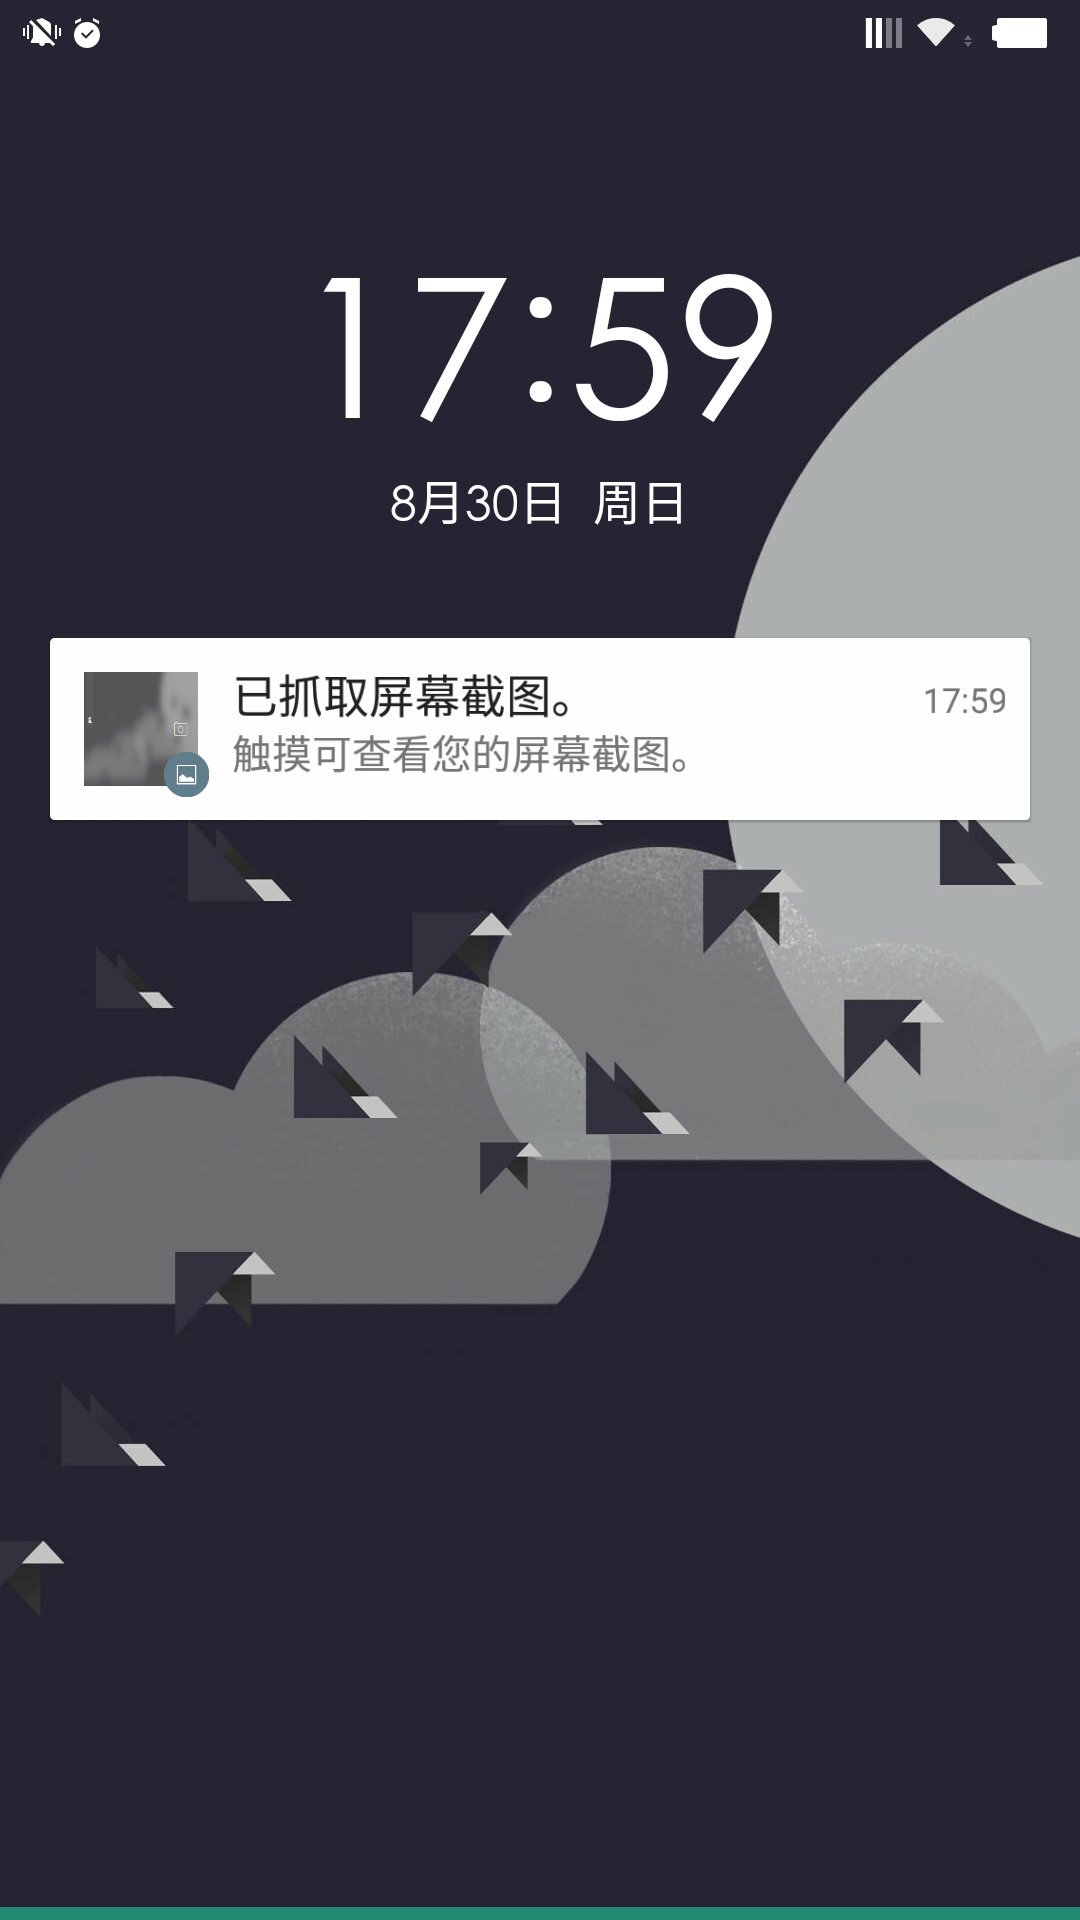 Screenshot_2015-08-30-17-59-58.png